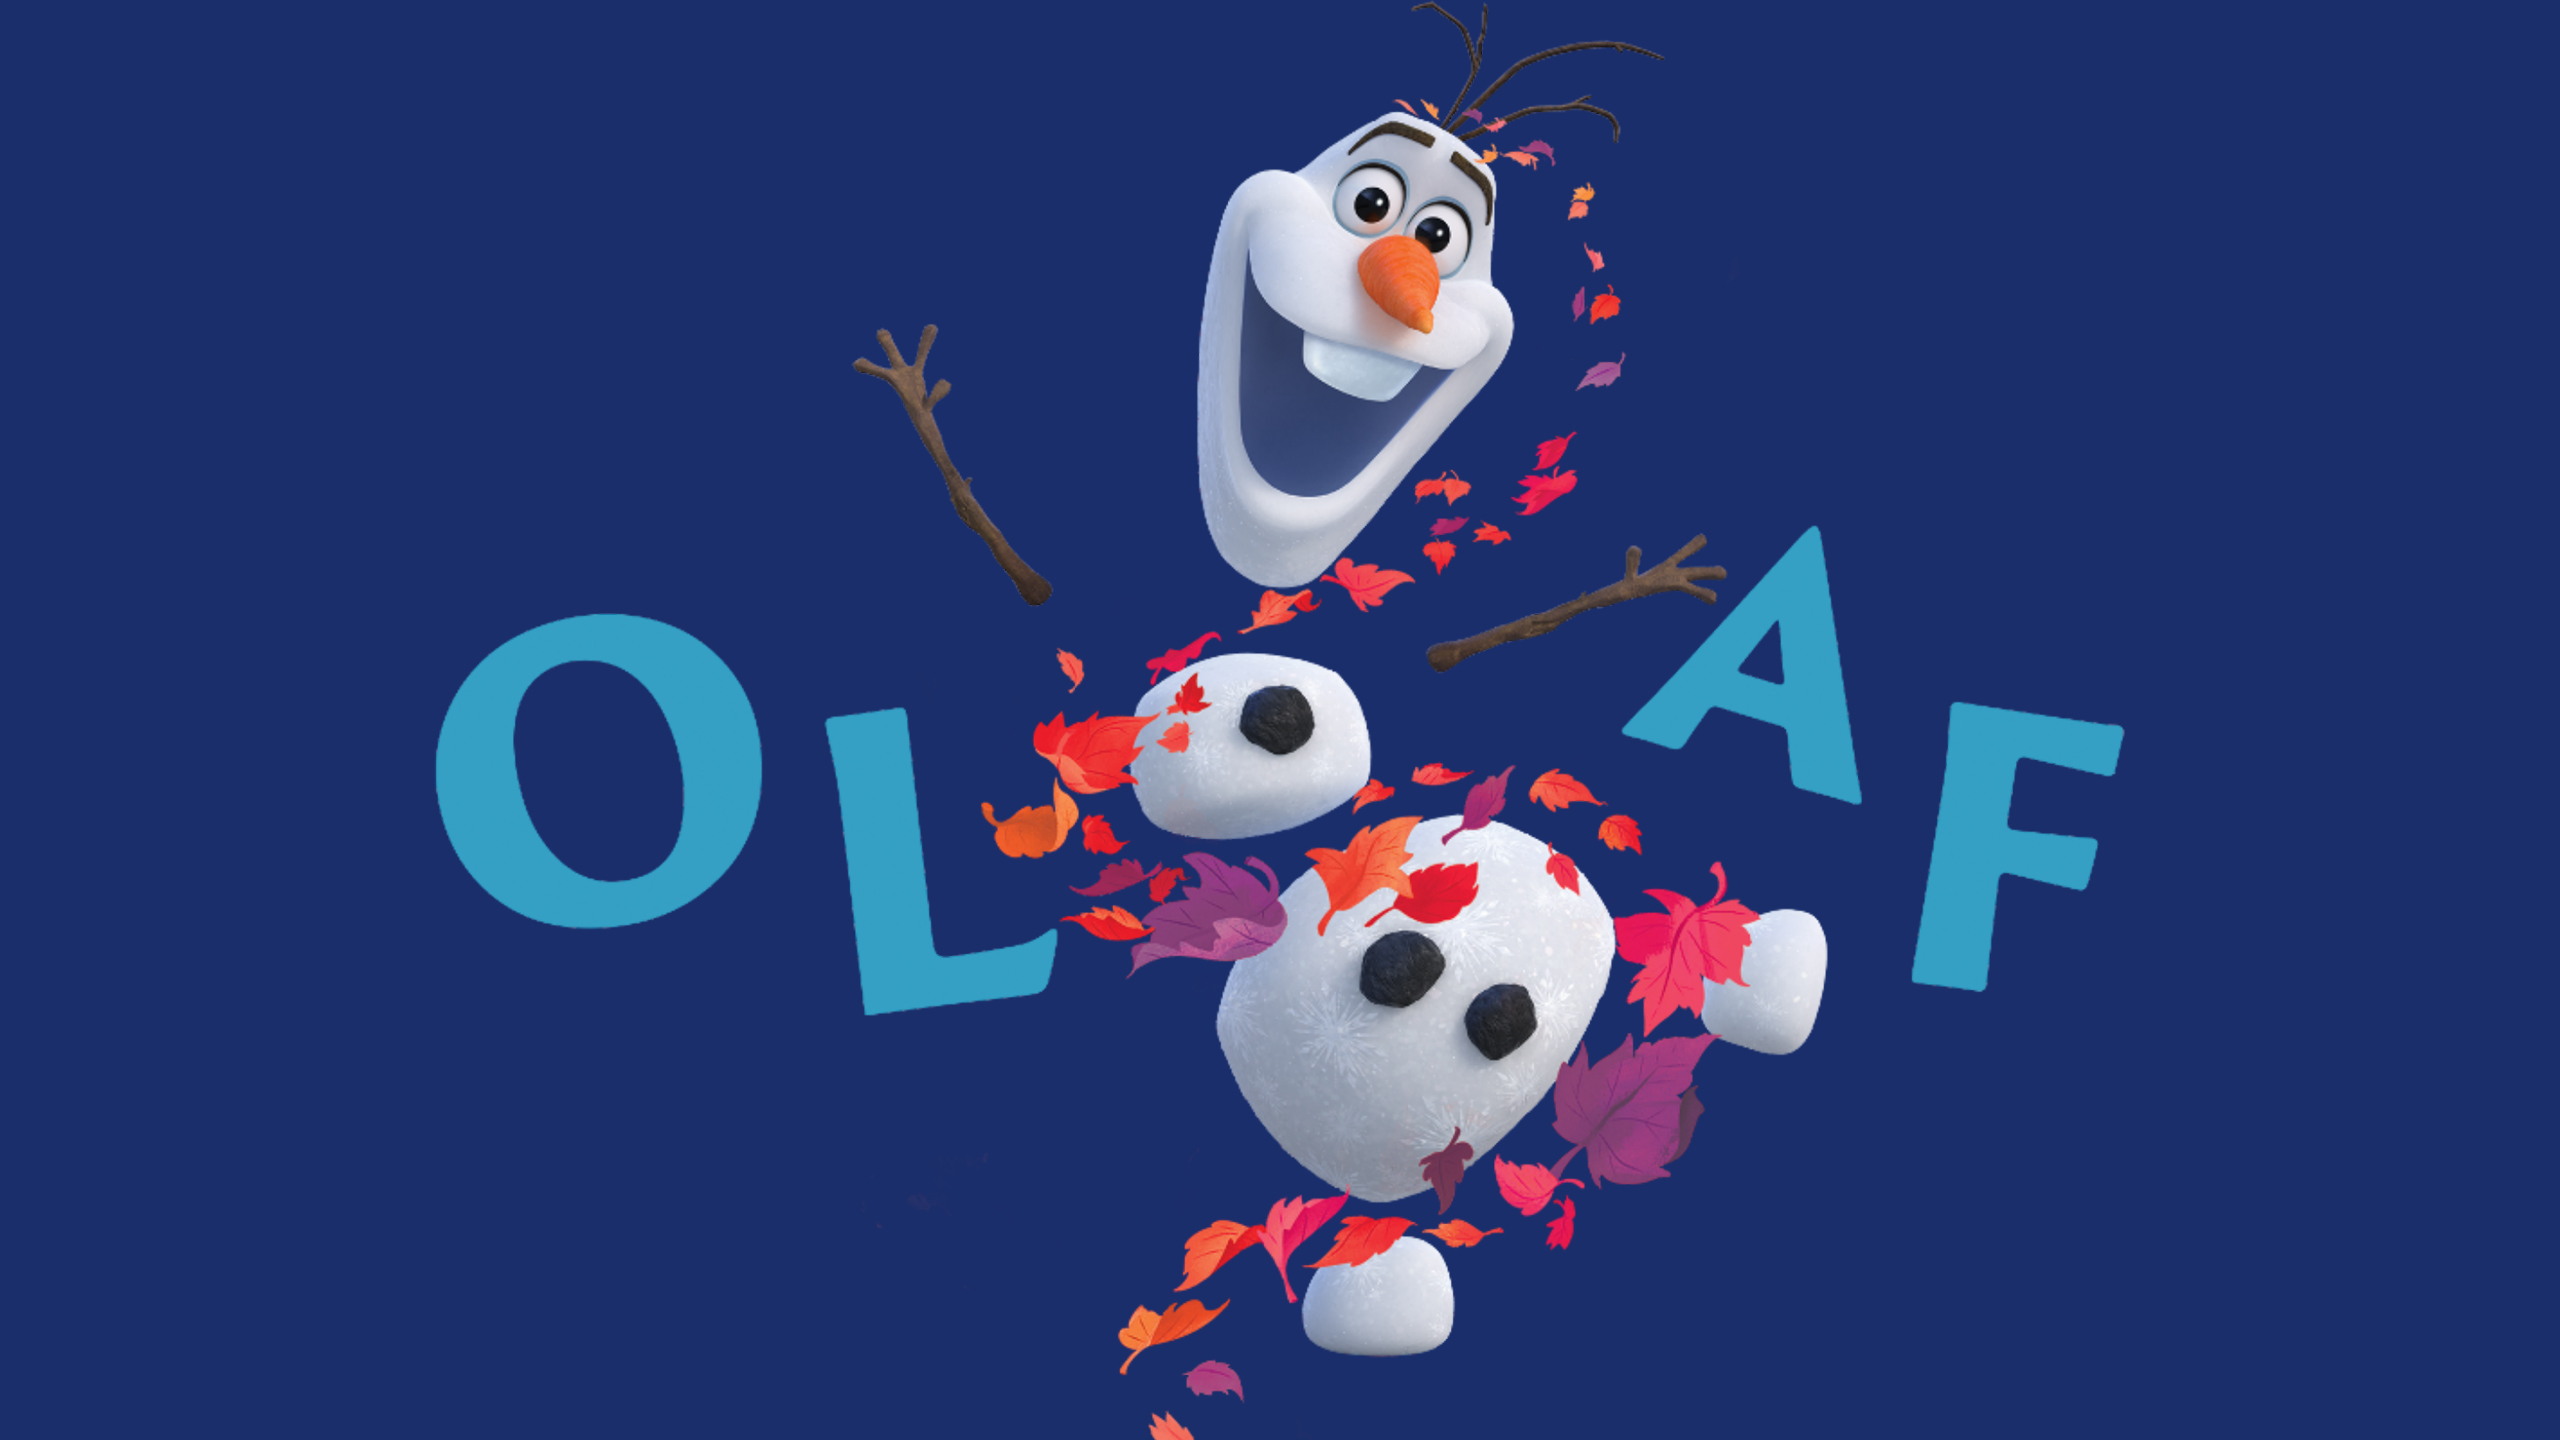 New Frozen 2 Hd Wallpapers With Official Clipart Youloveitcom